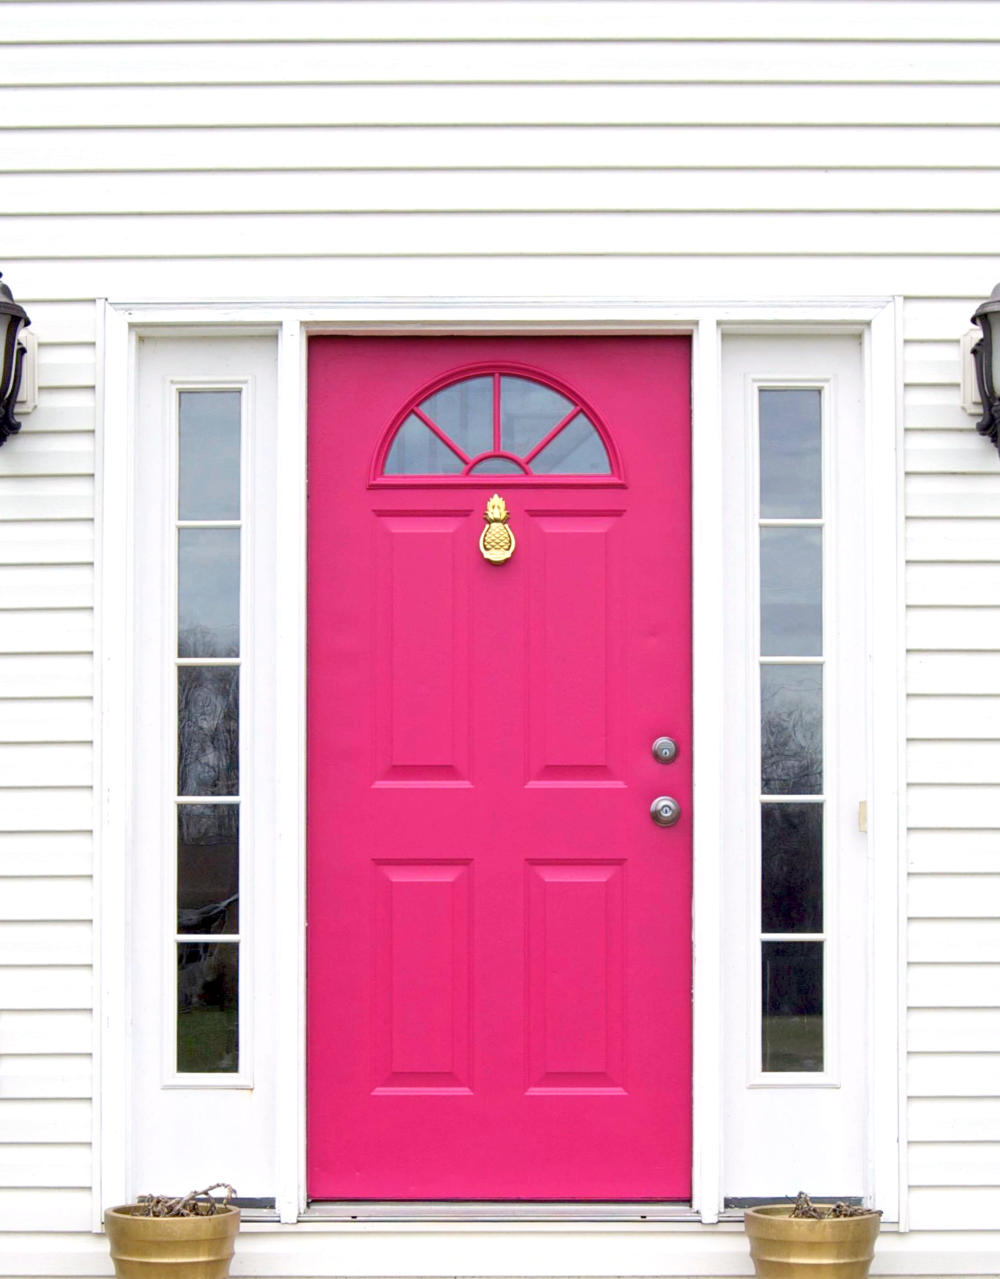 The Pink Door at Erica Hammer Calligraphy and Creative Studio